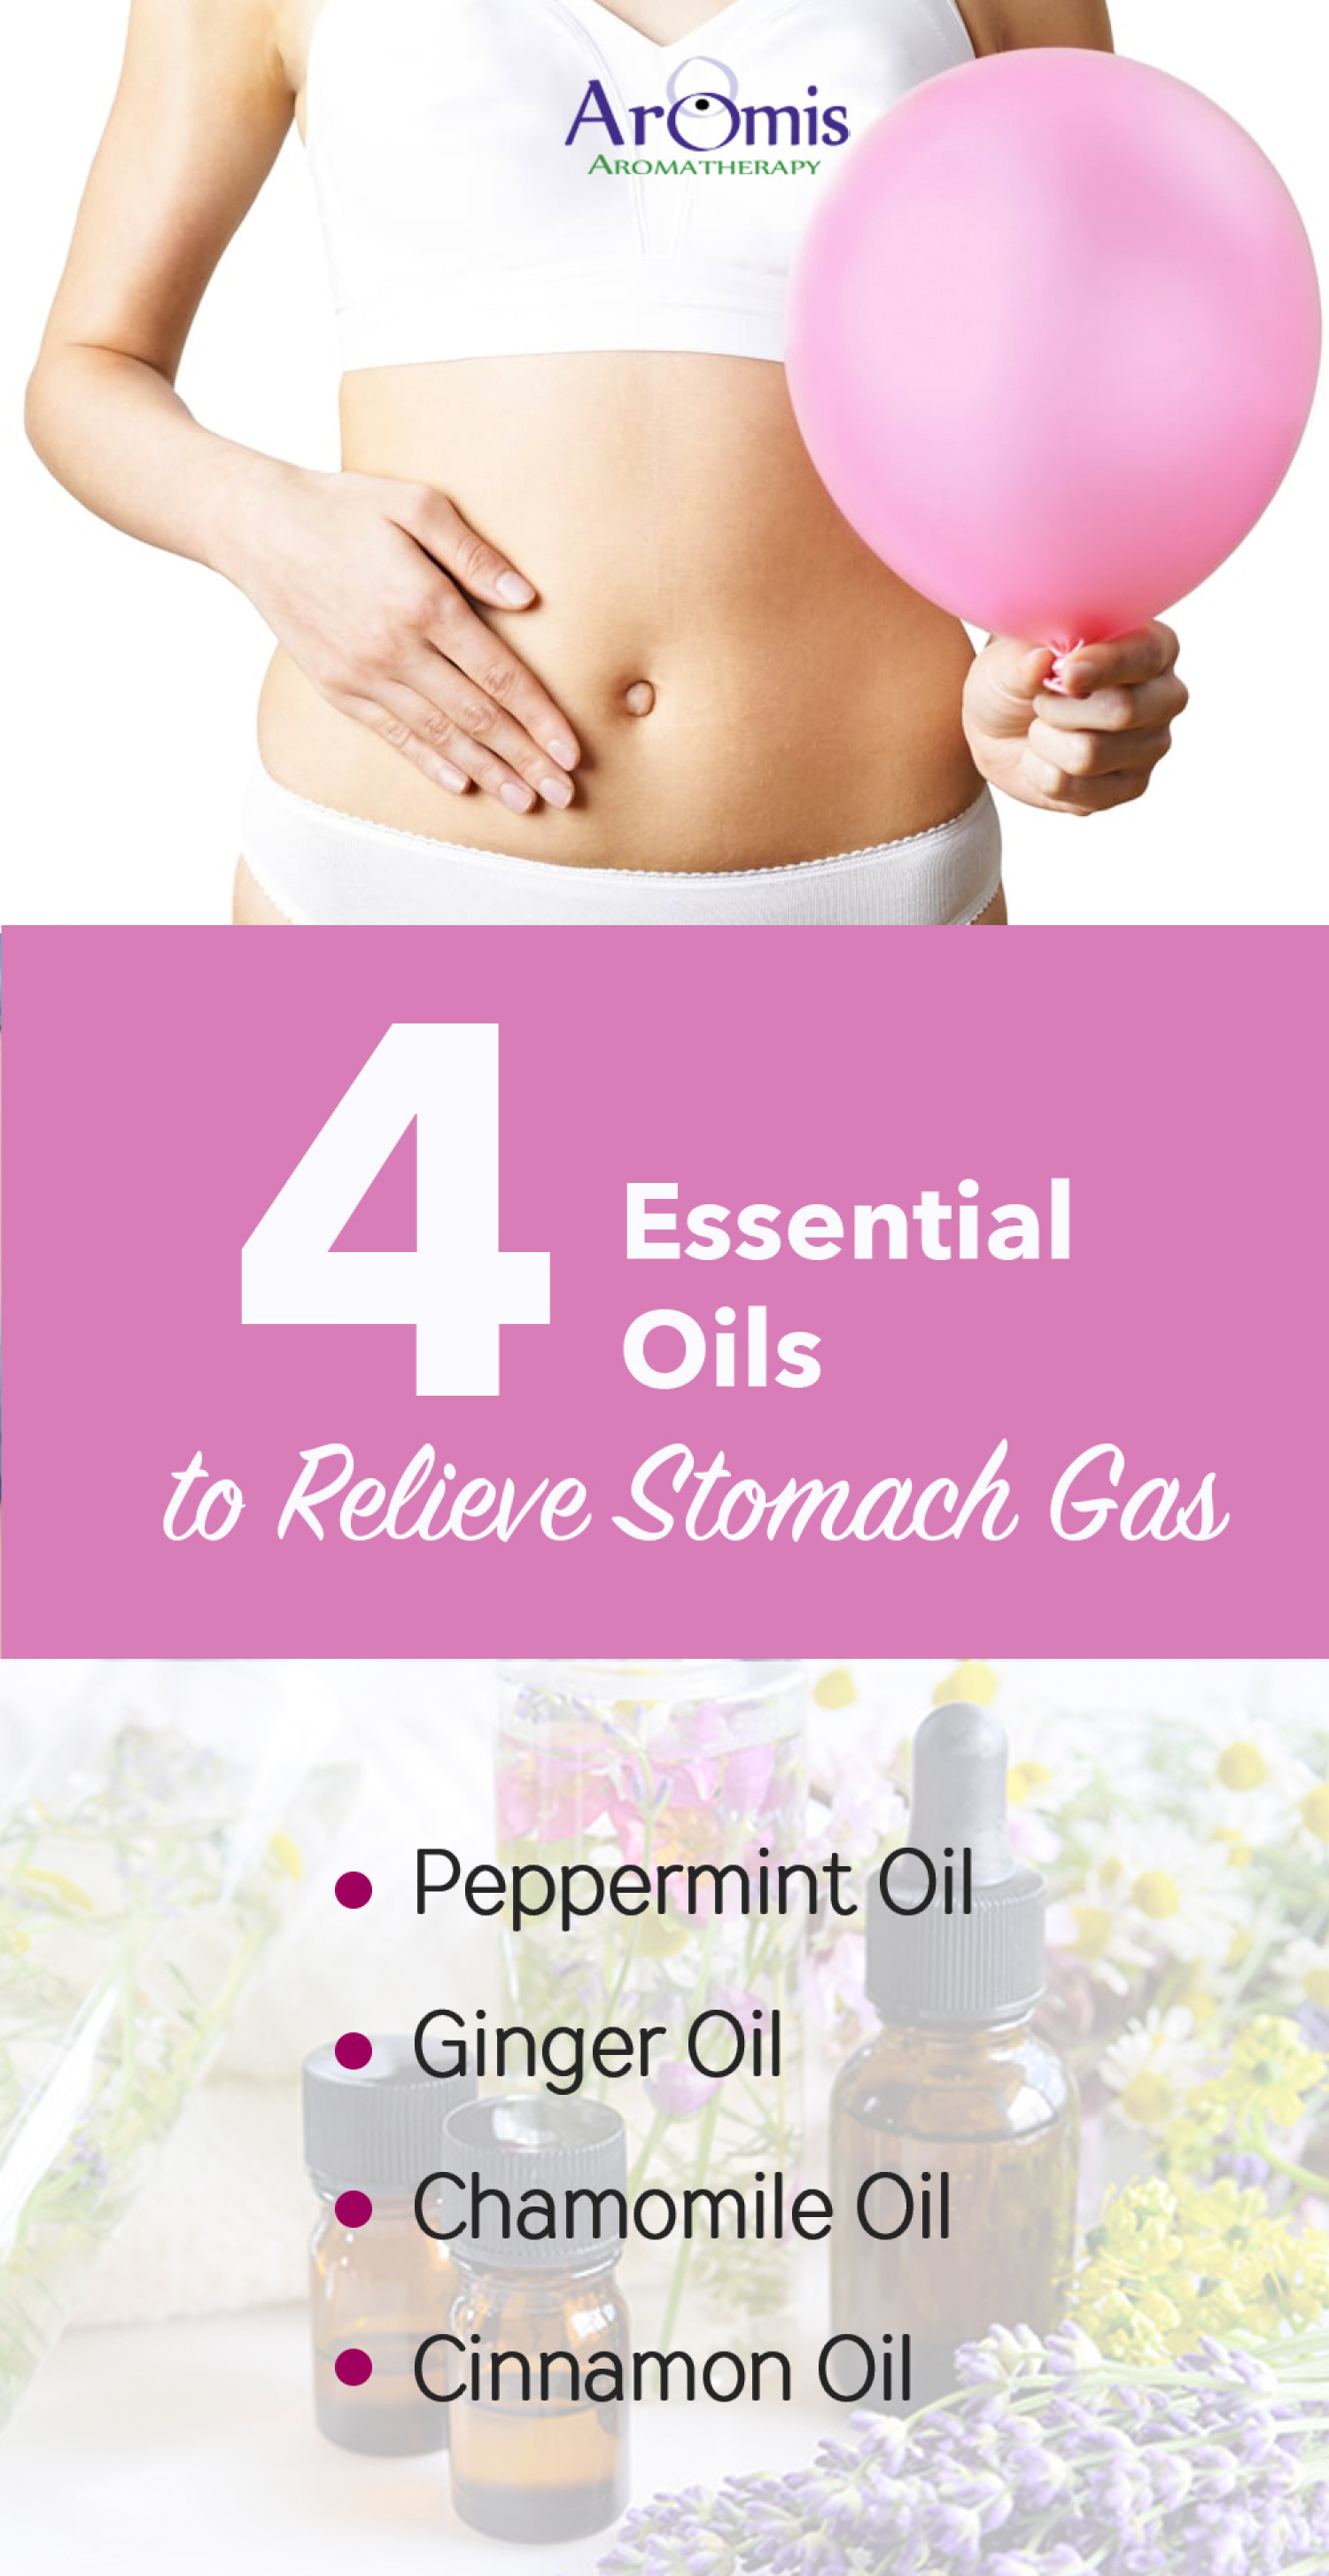 4 Essential Oils to Relieve Stomach Gas Infographic